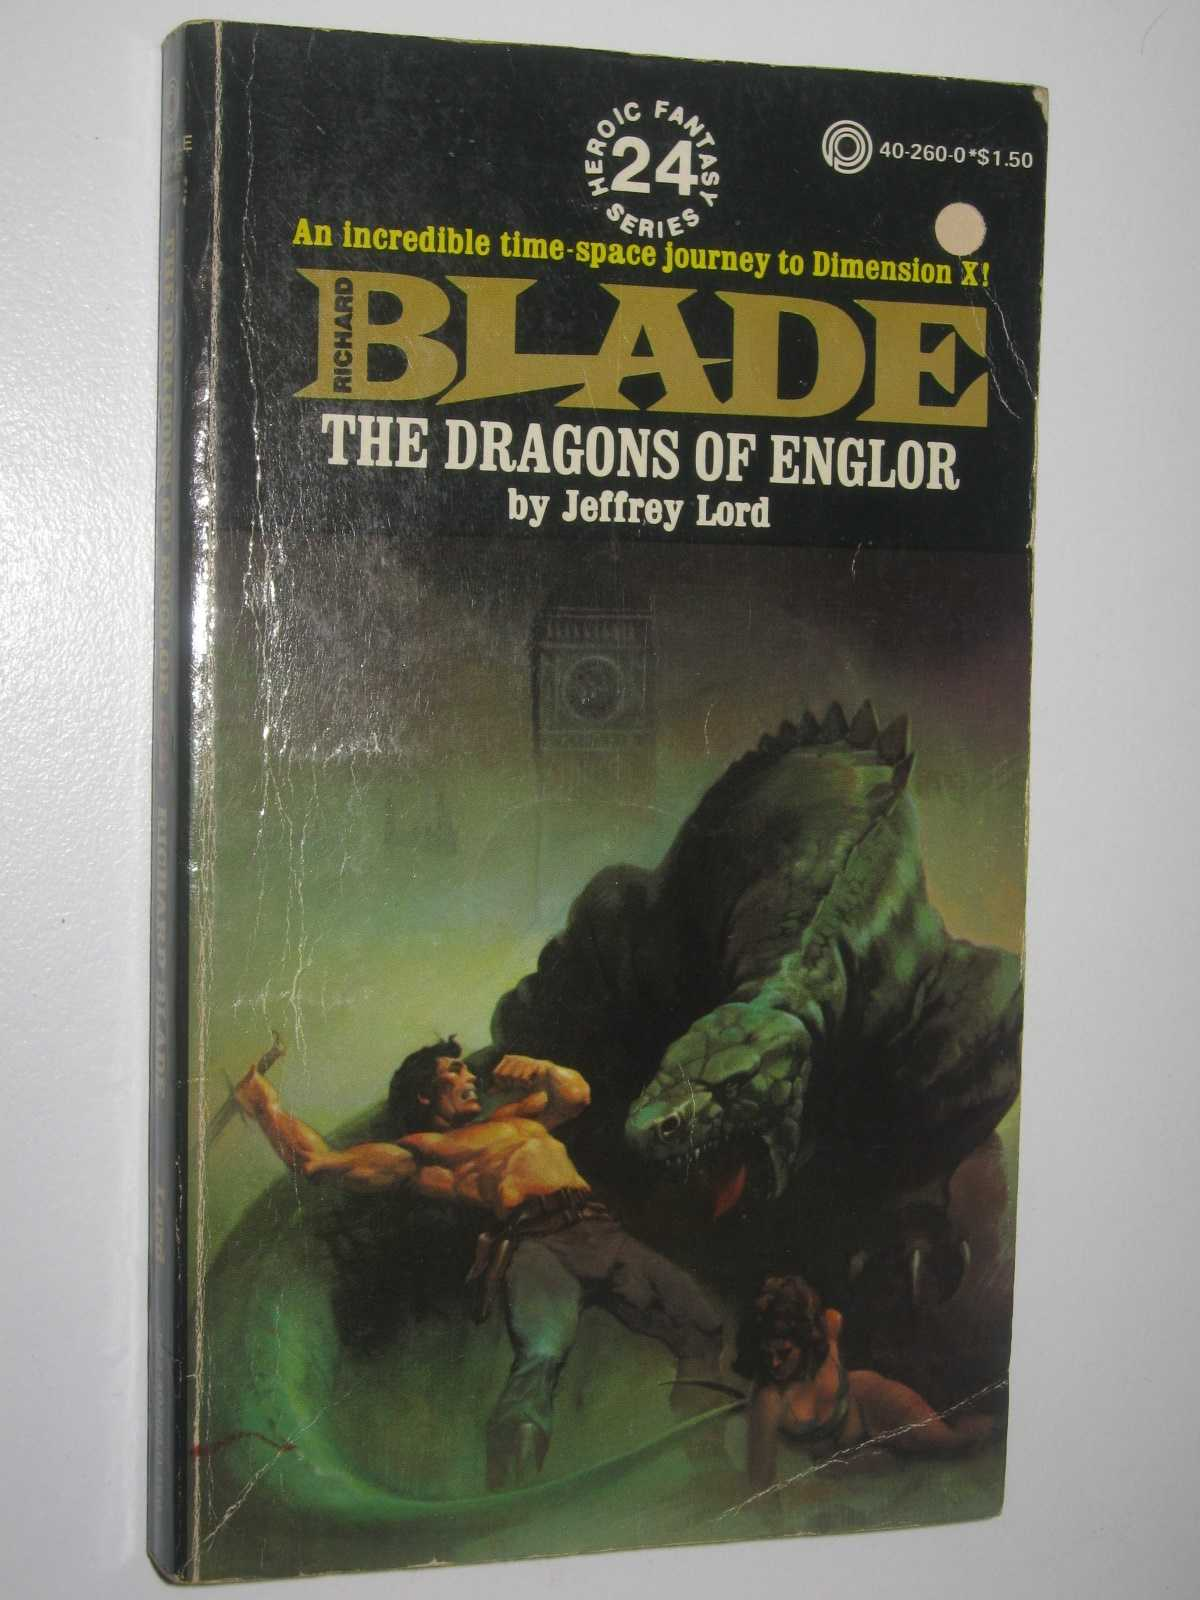 The Dragons of Englor - Blade Series #24, Lord, Jeffrey